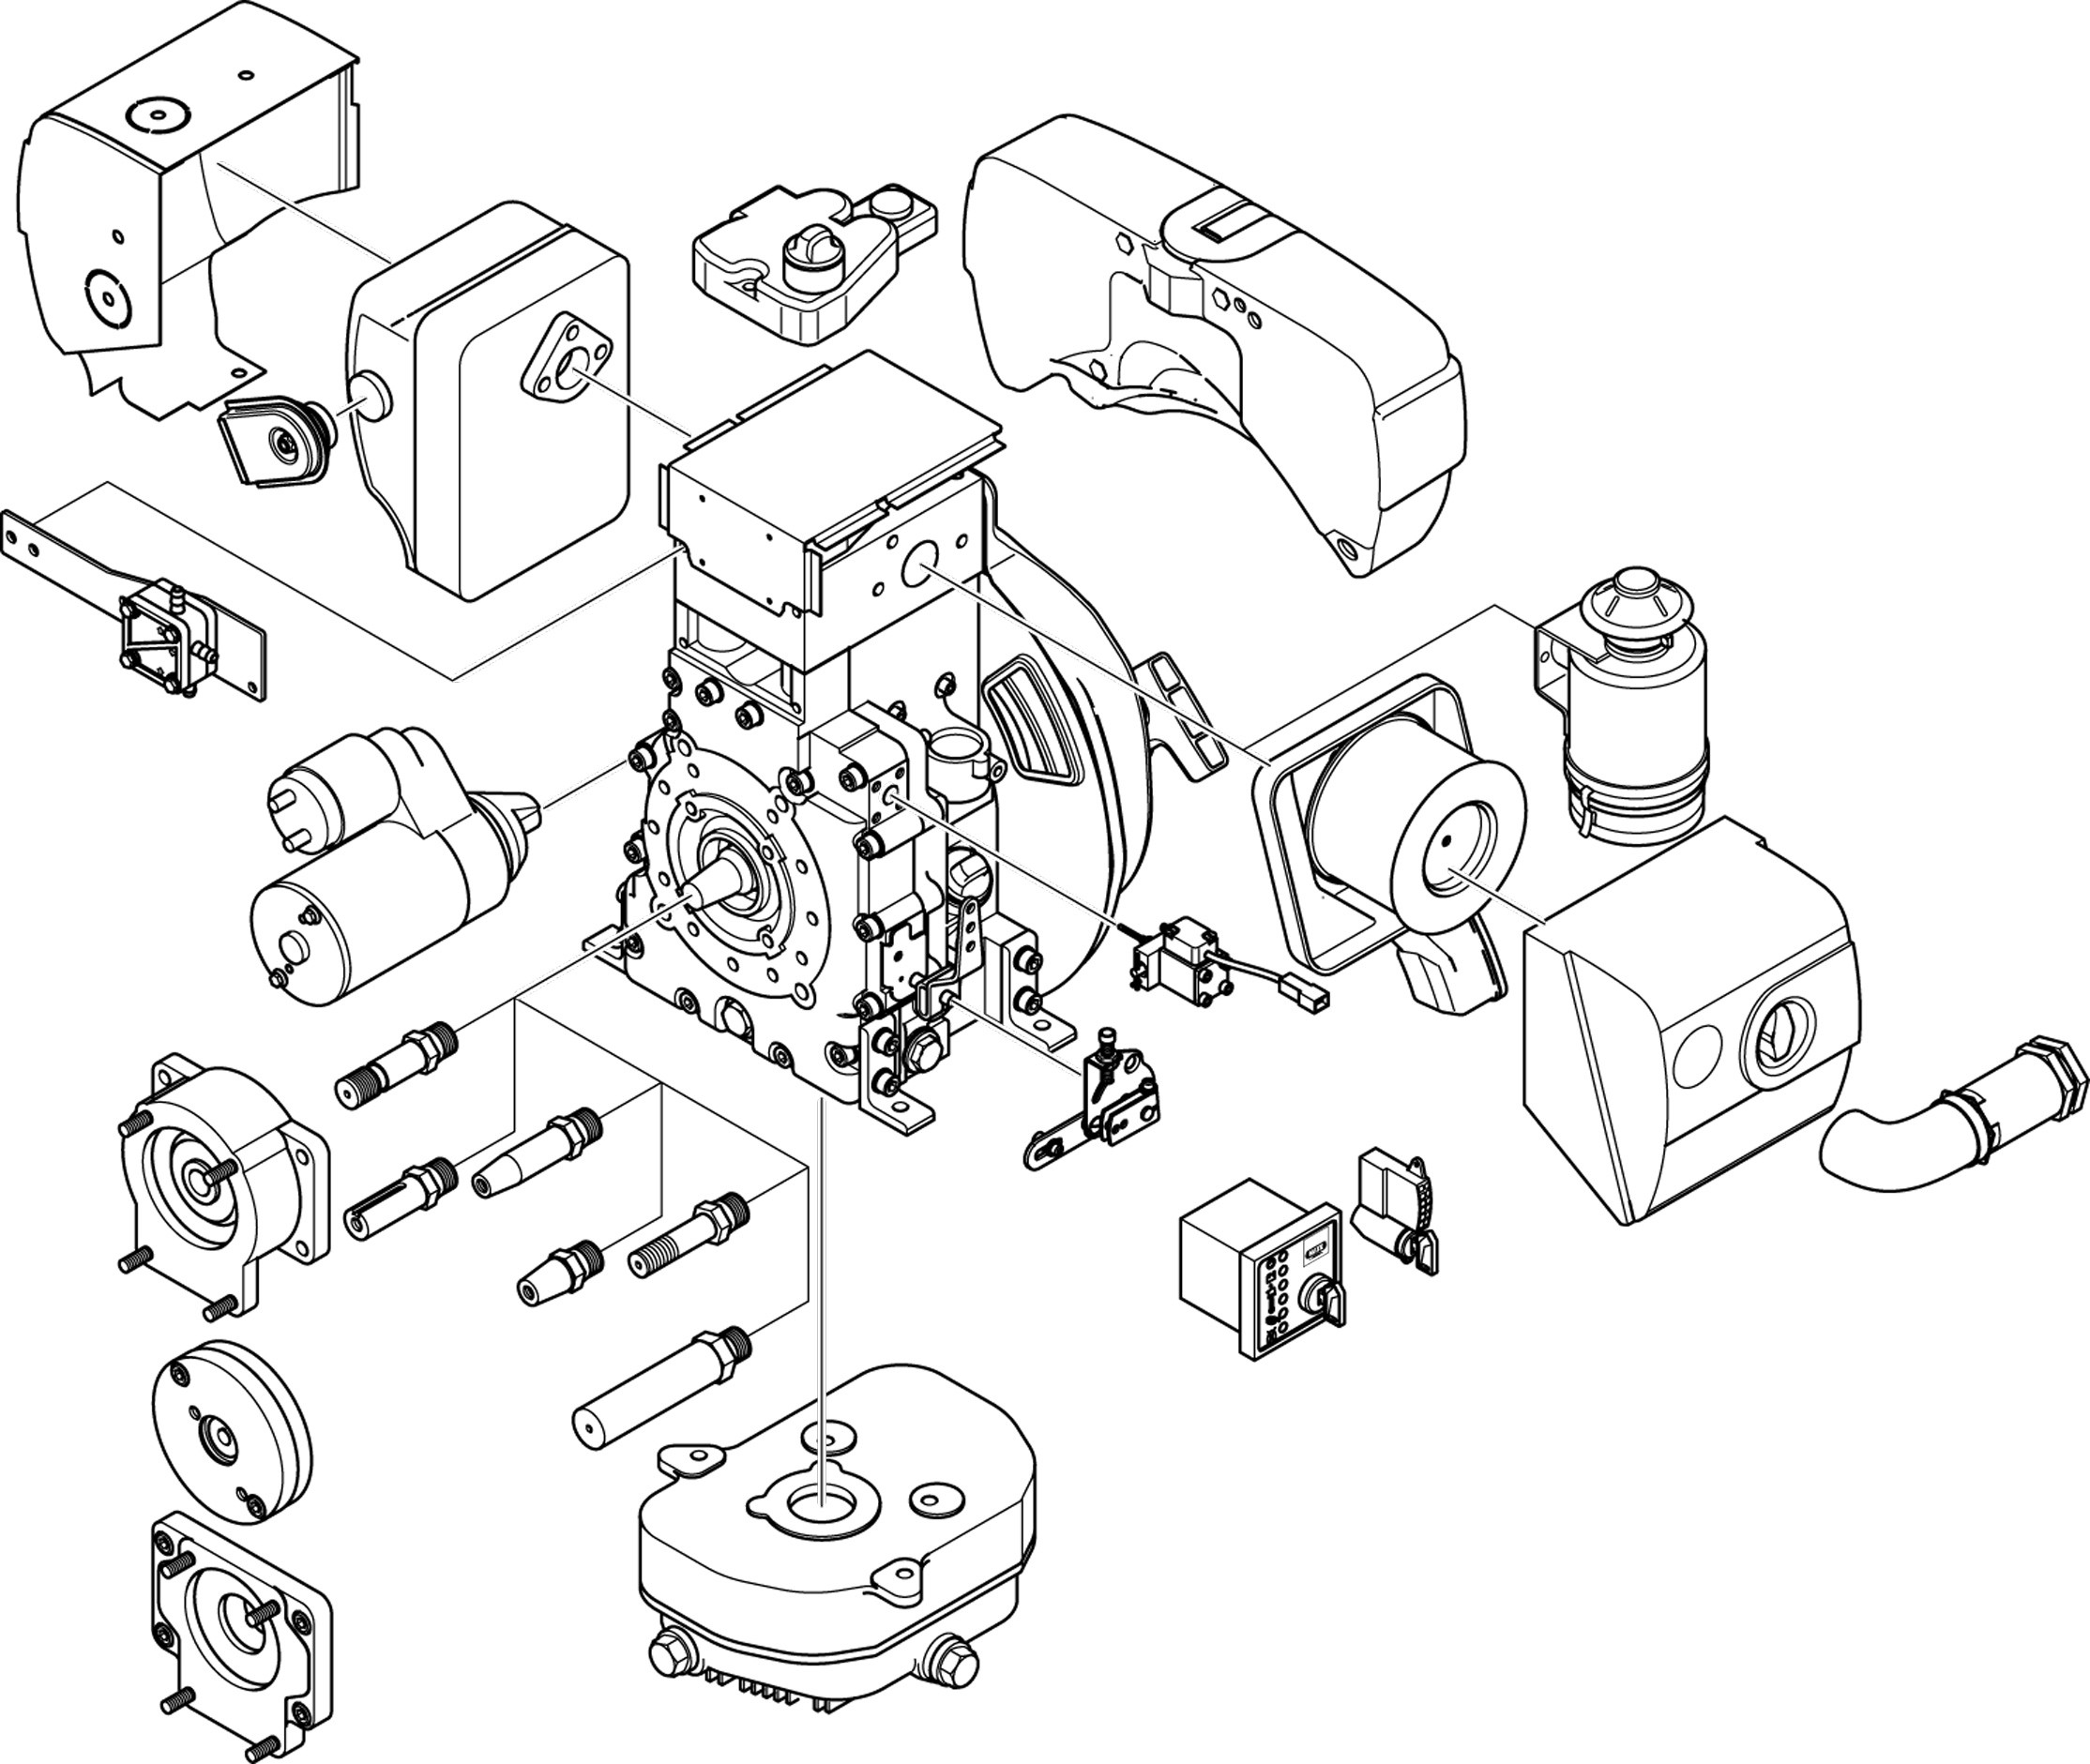 Club Car Engine Parts Diagram Hatz Engine Diagram Another Blog About Wiring Diagram • Of Club Car Engine Parts Diagram Pin by Jimmiejanet Testellamwfz On What Does An Engine with Turbo